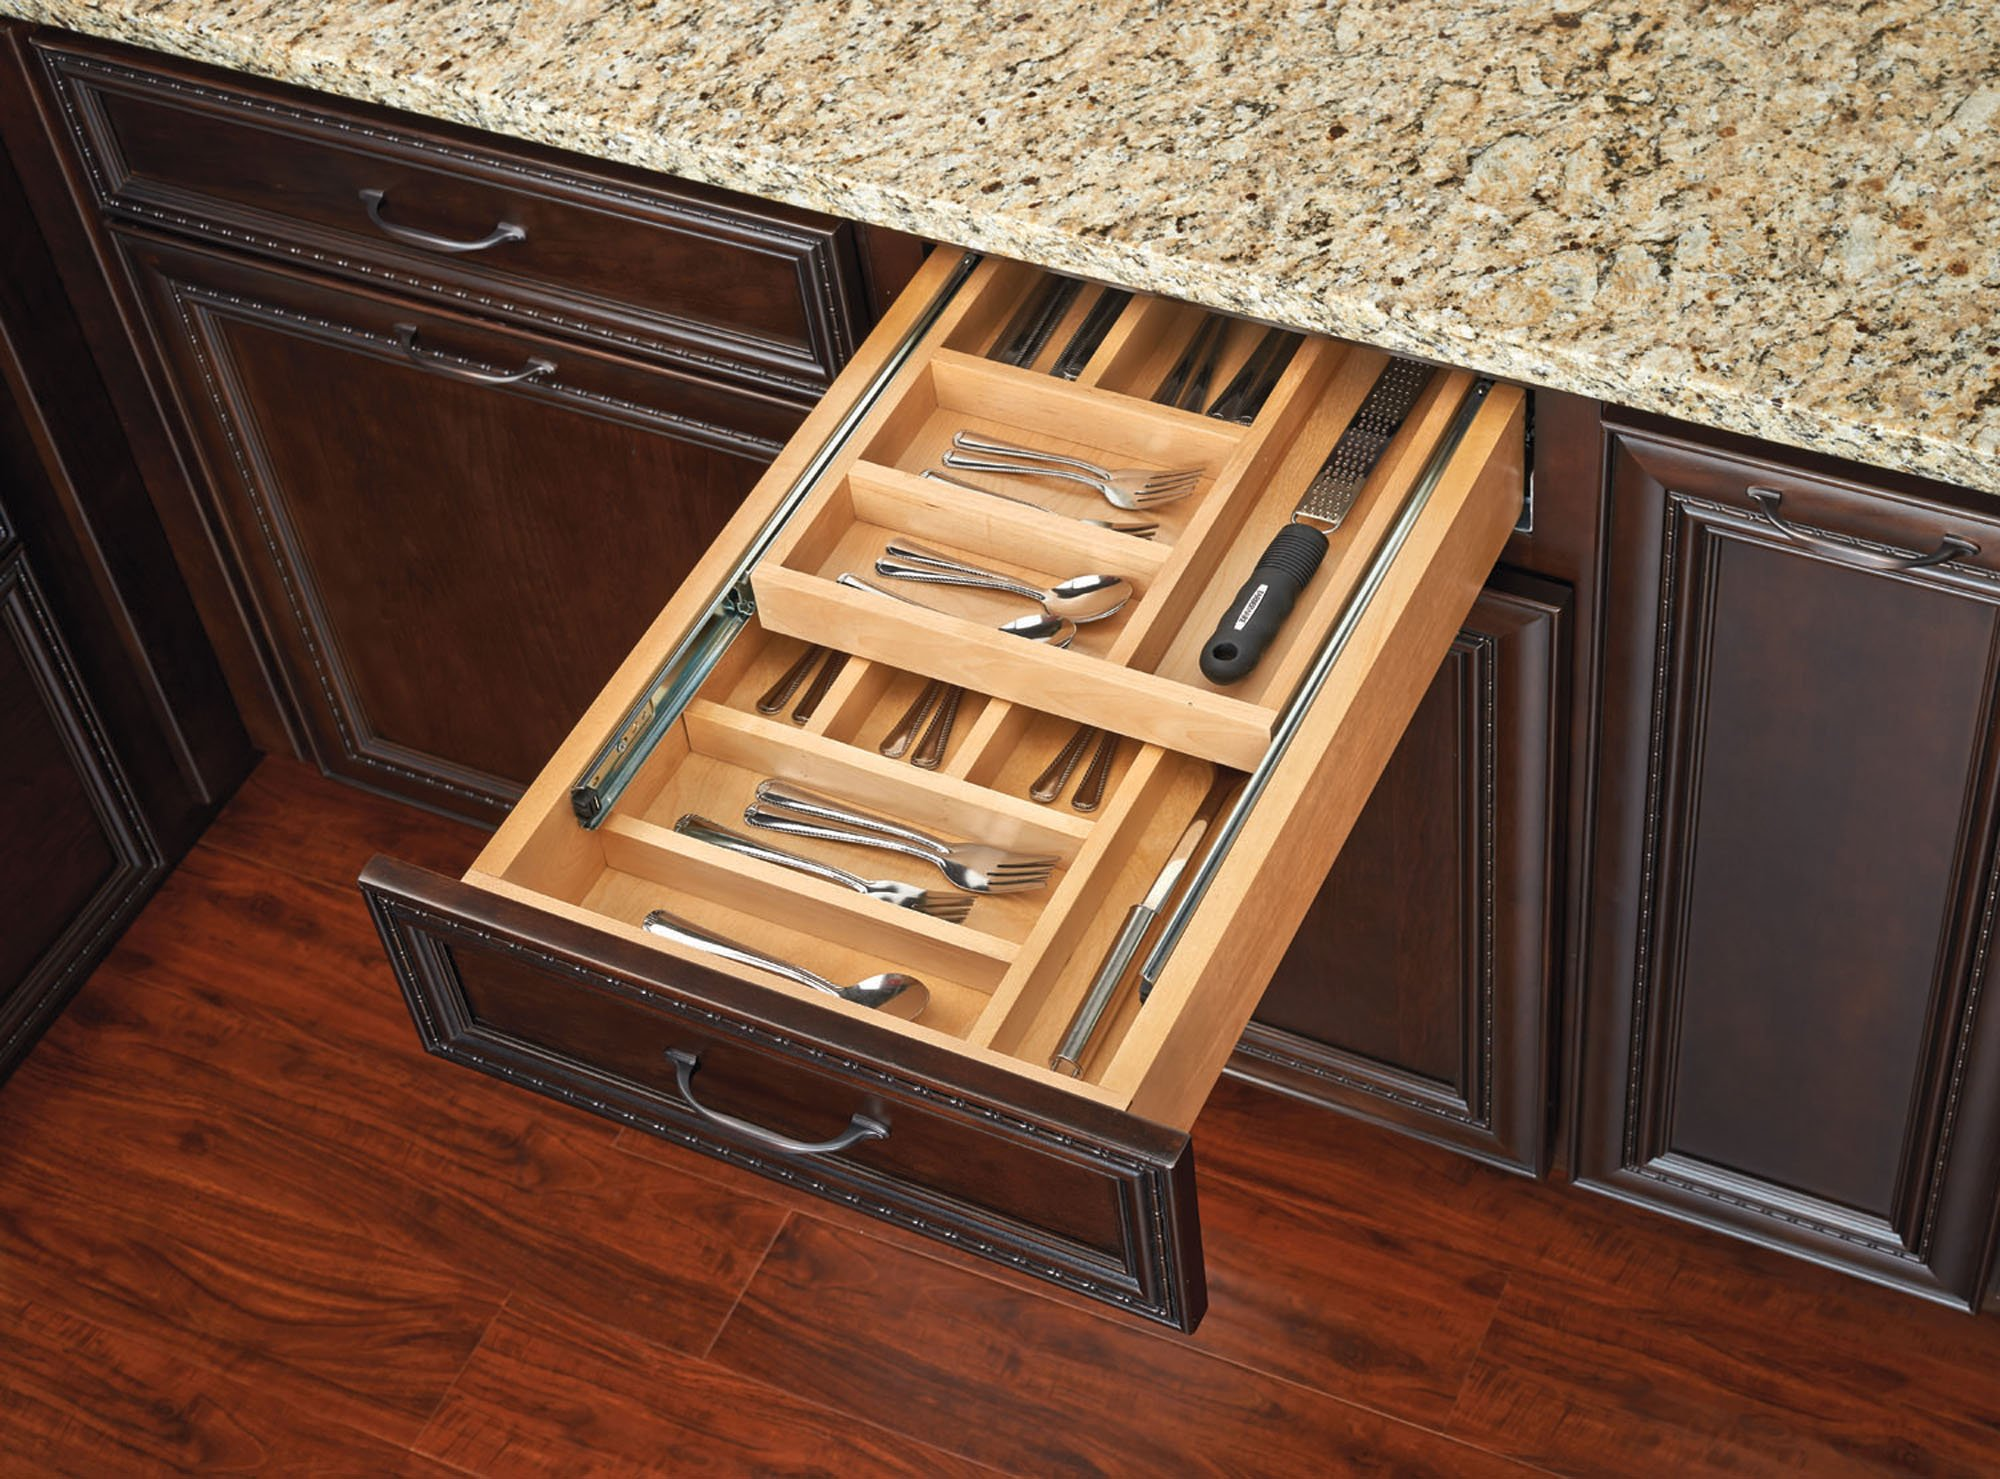 Rev-A-Shelf - 4WTCD-15SC-1 - Small Double Tiered Cutlery Drawer with Soft-Close Slides